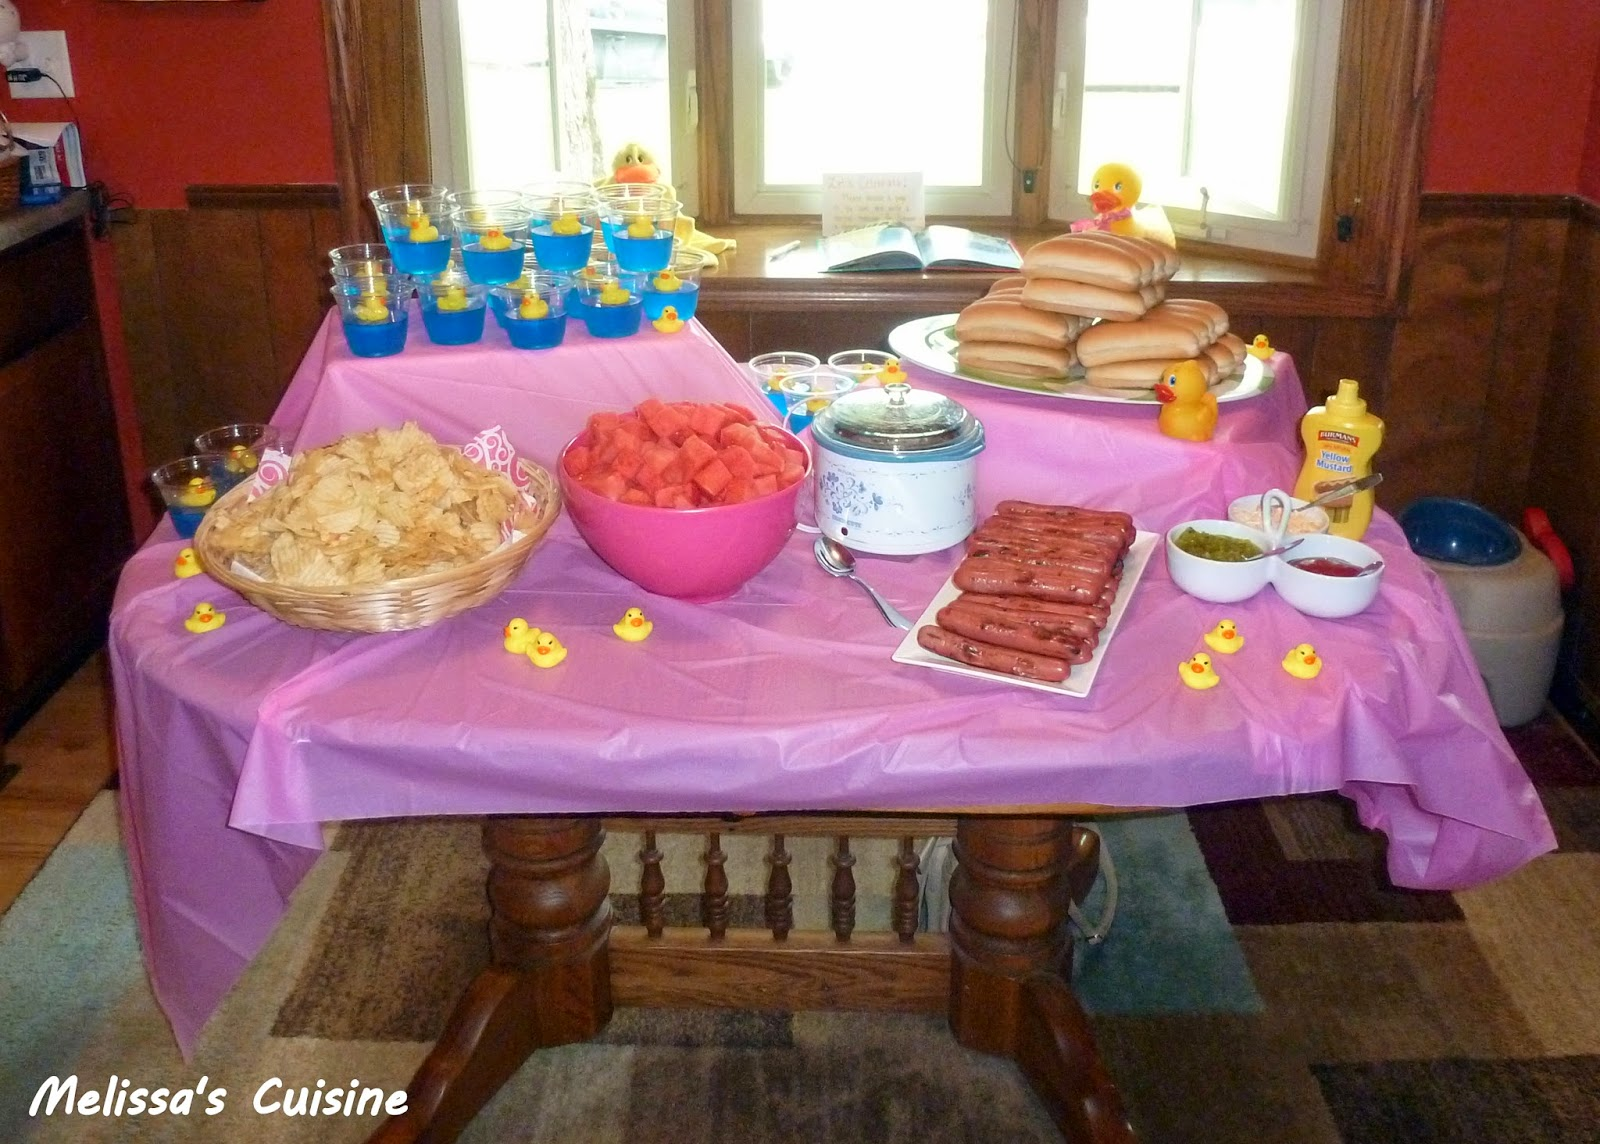 Melissa's Cuisine: Rubber Ducky First Birthday Party